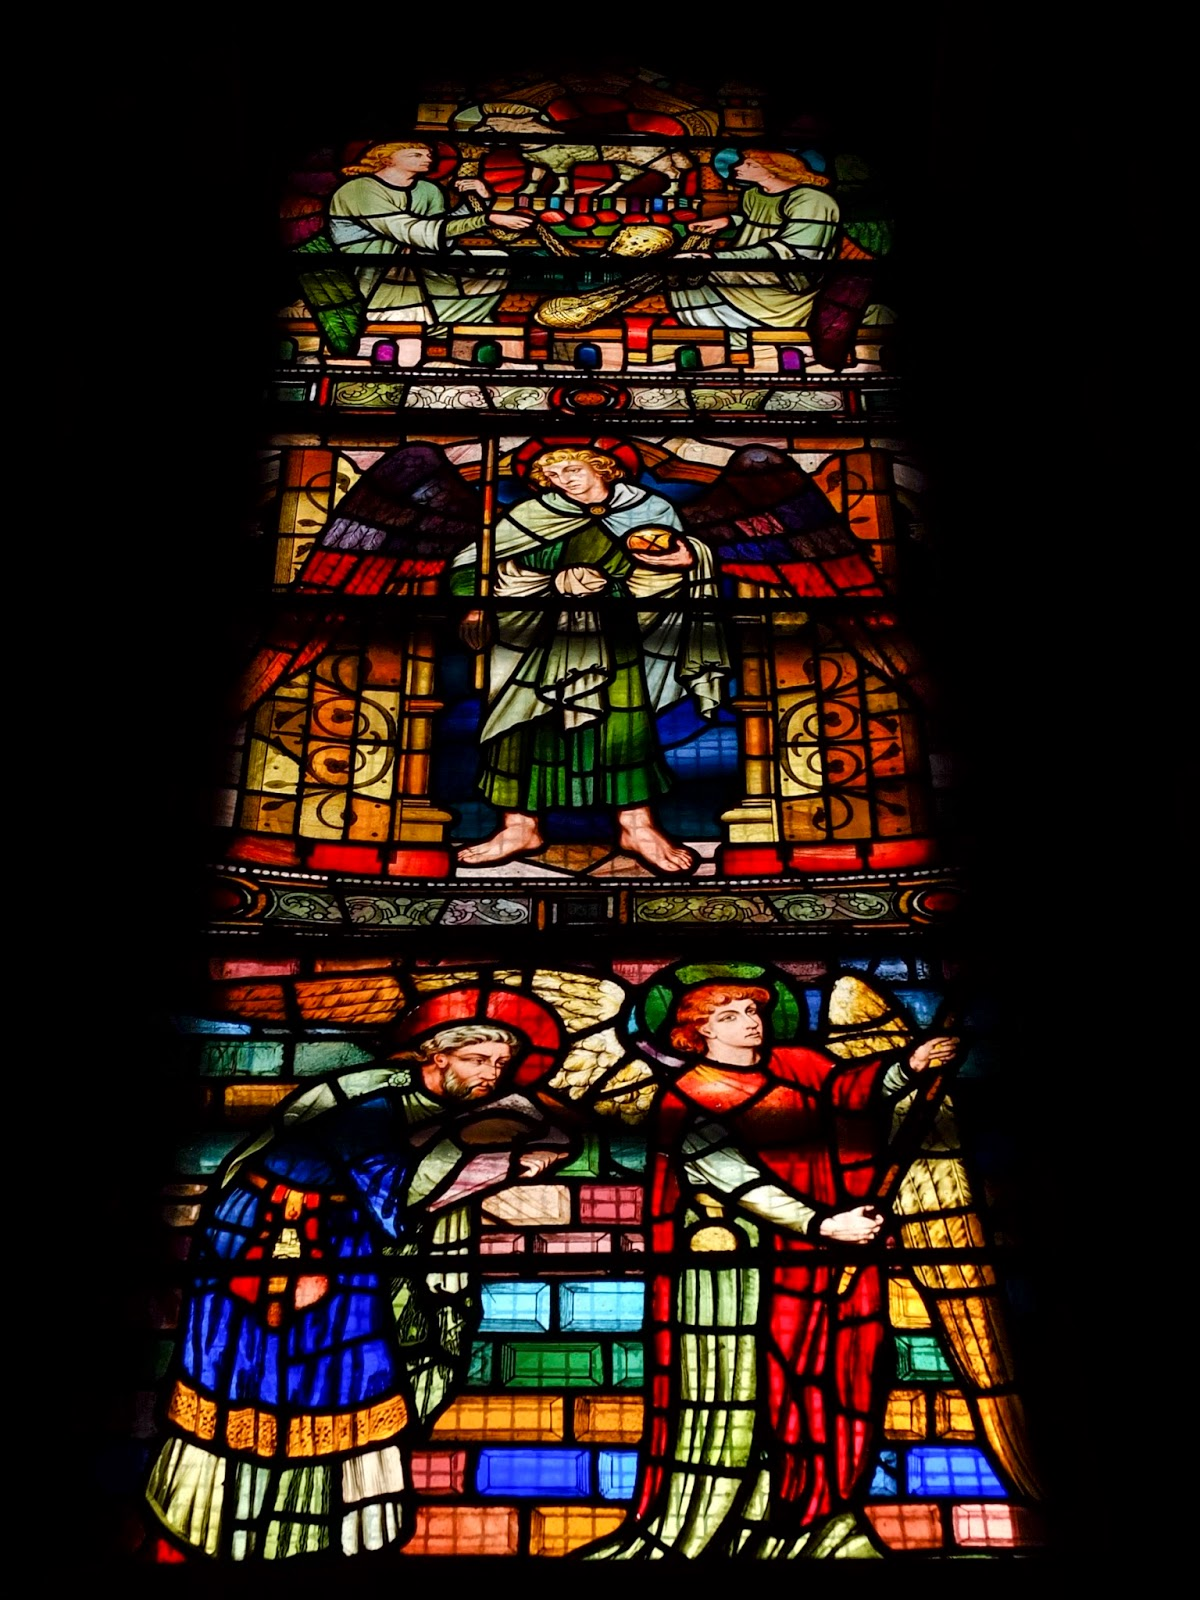 A stained glass window inside St. Fin Barre's Cathedral in Cork City.